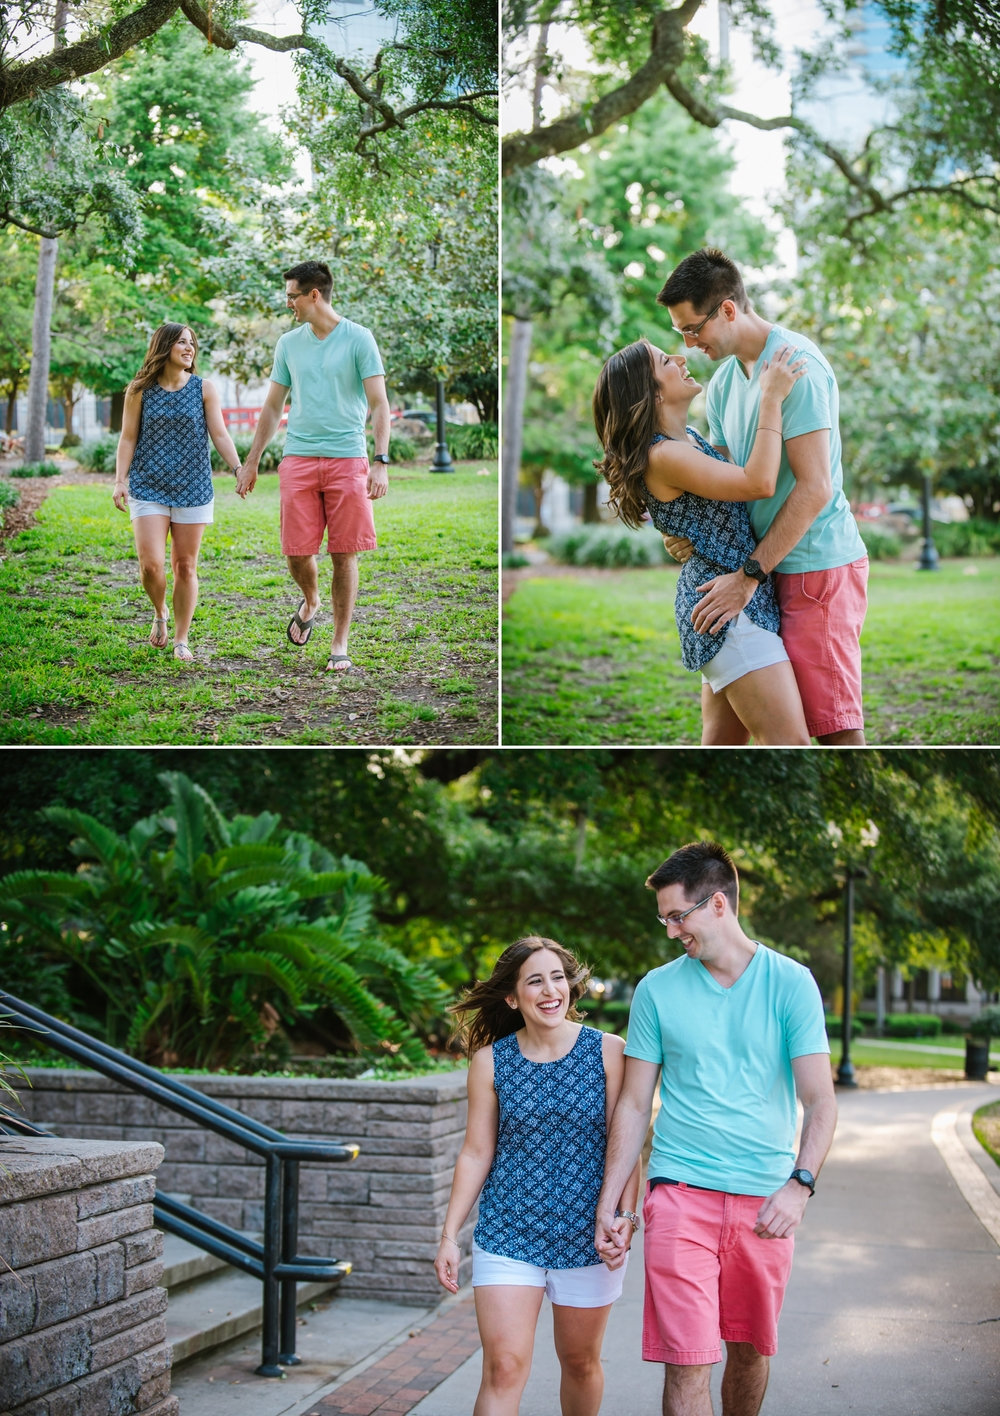 ashlee-hamon-photography-orlando-lake-eola-engagement-photography_0002.jpg